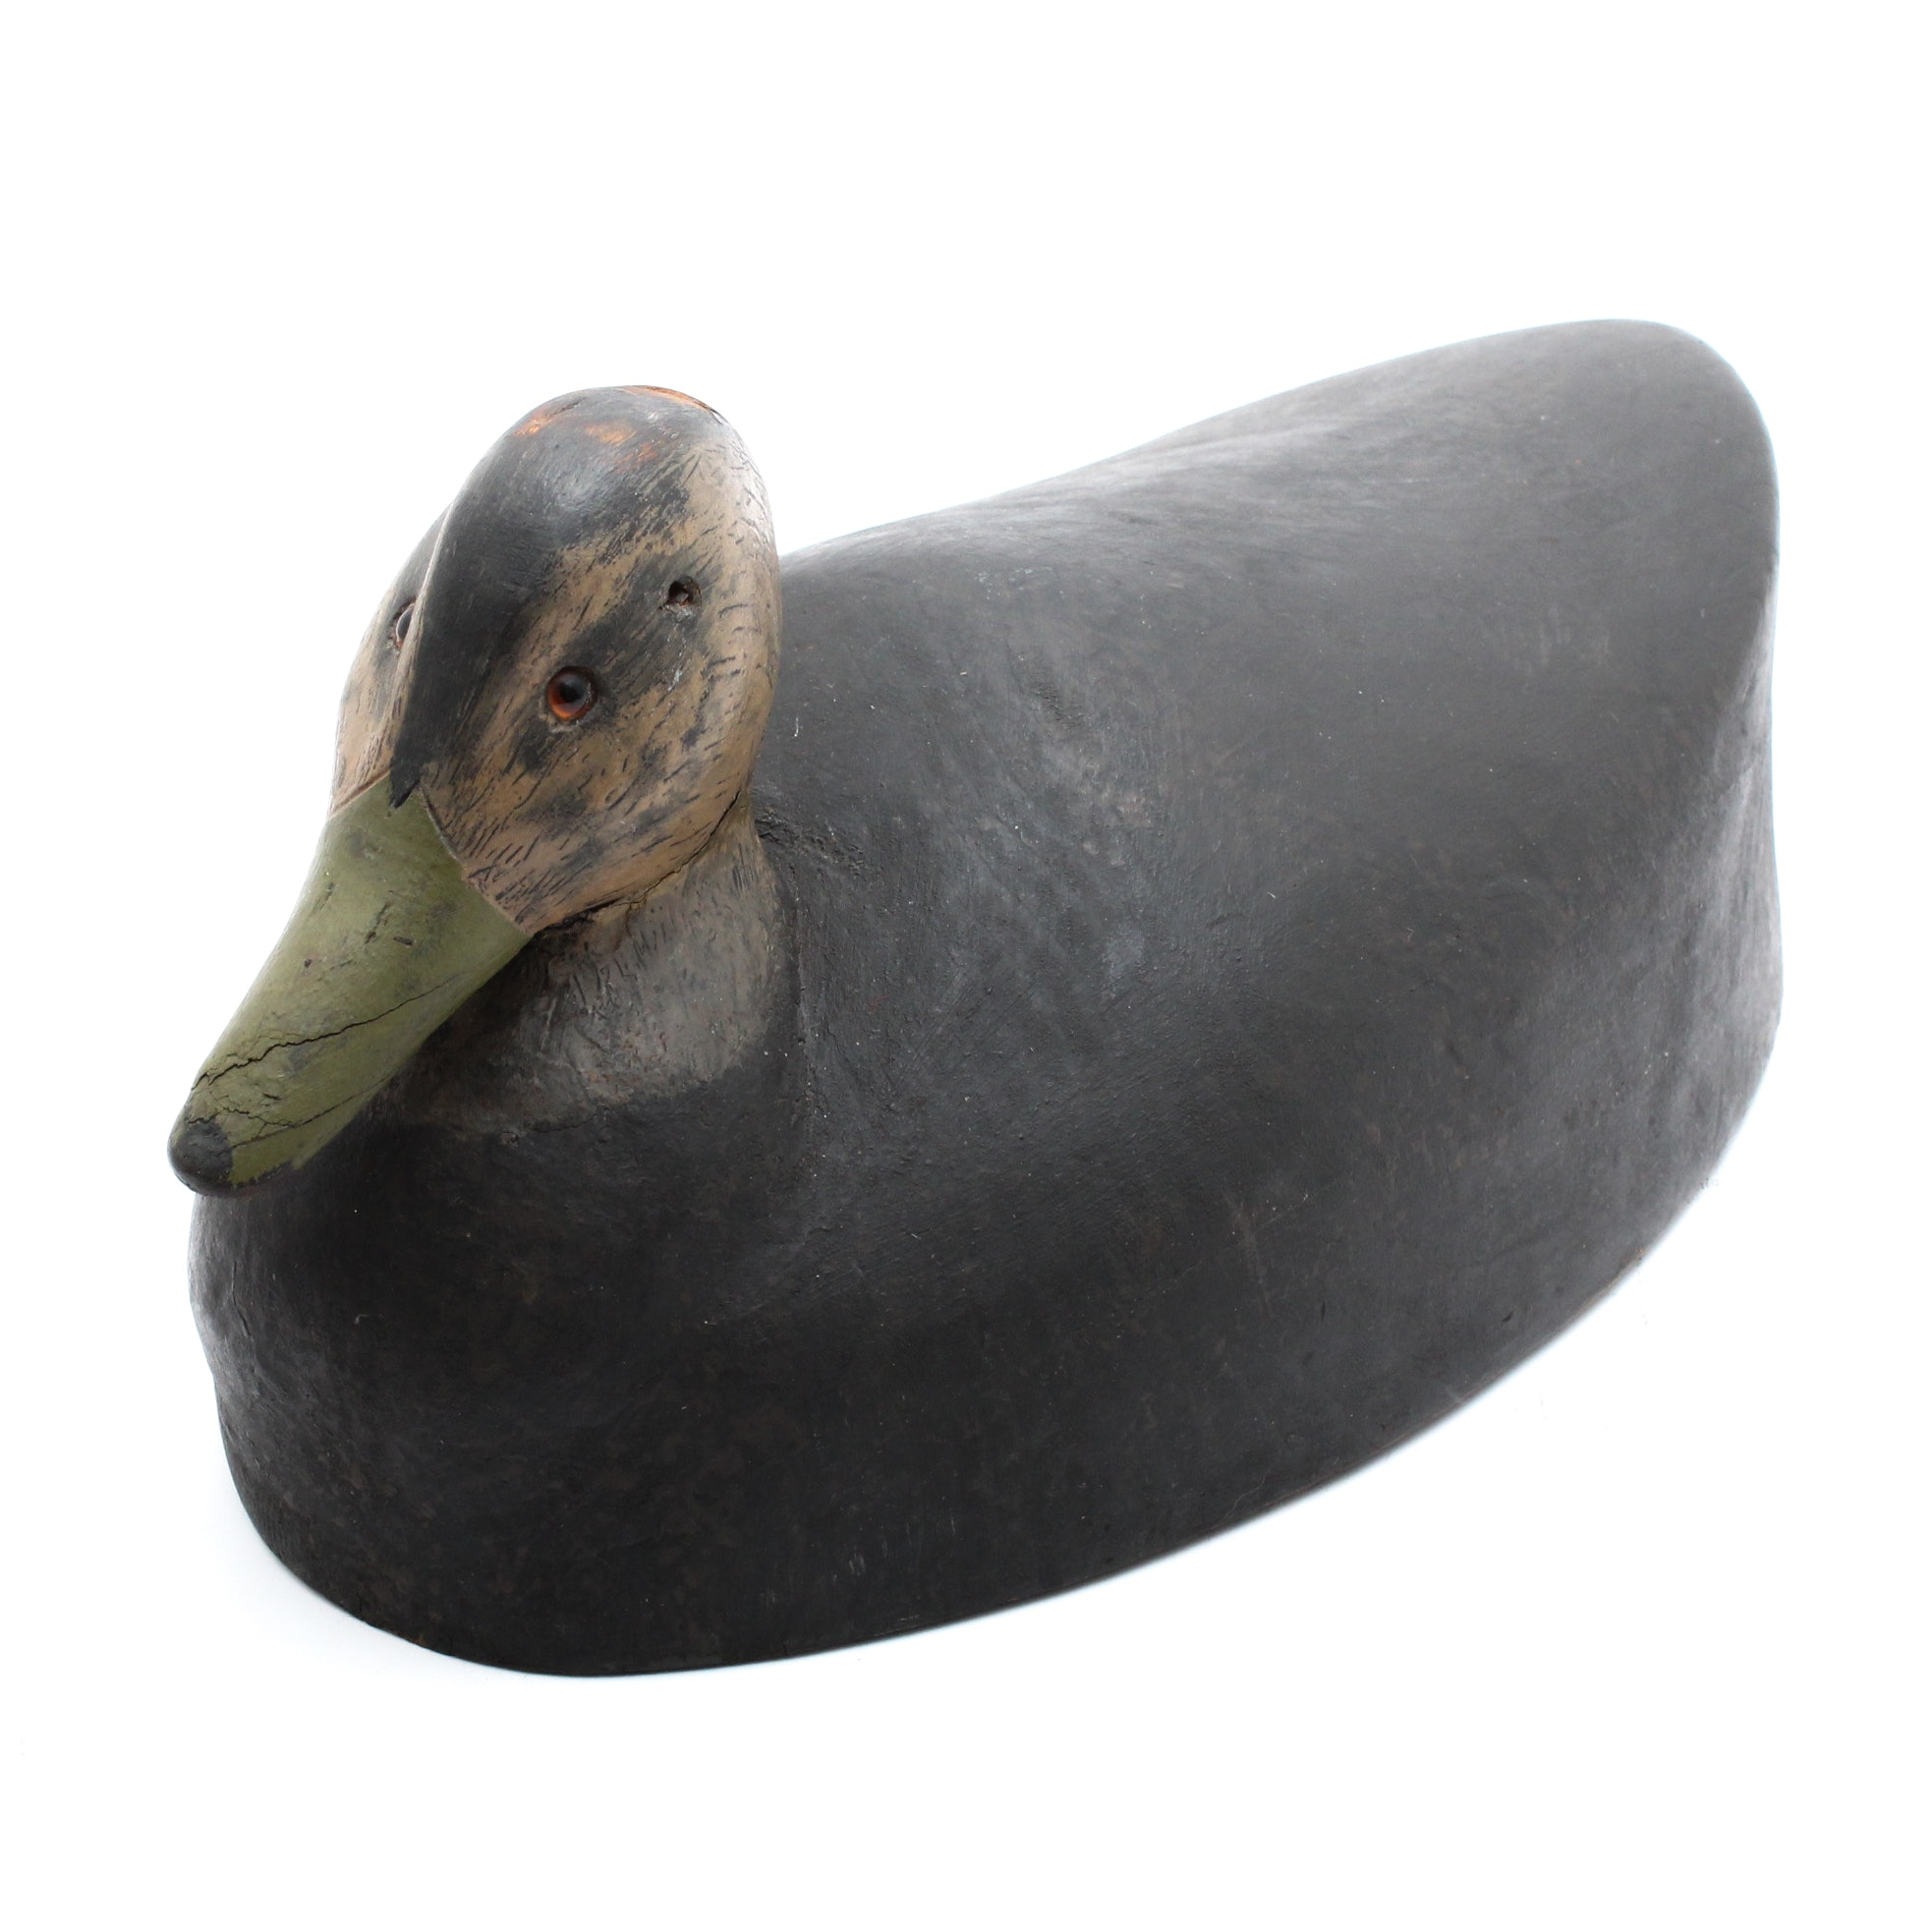 Robert Kitchener Roberson Carved Duck Decoy